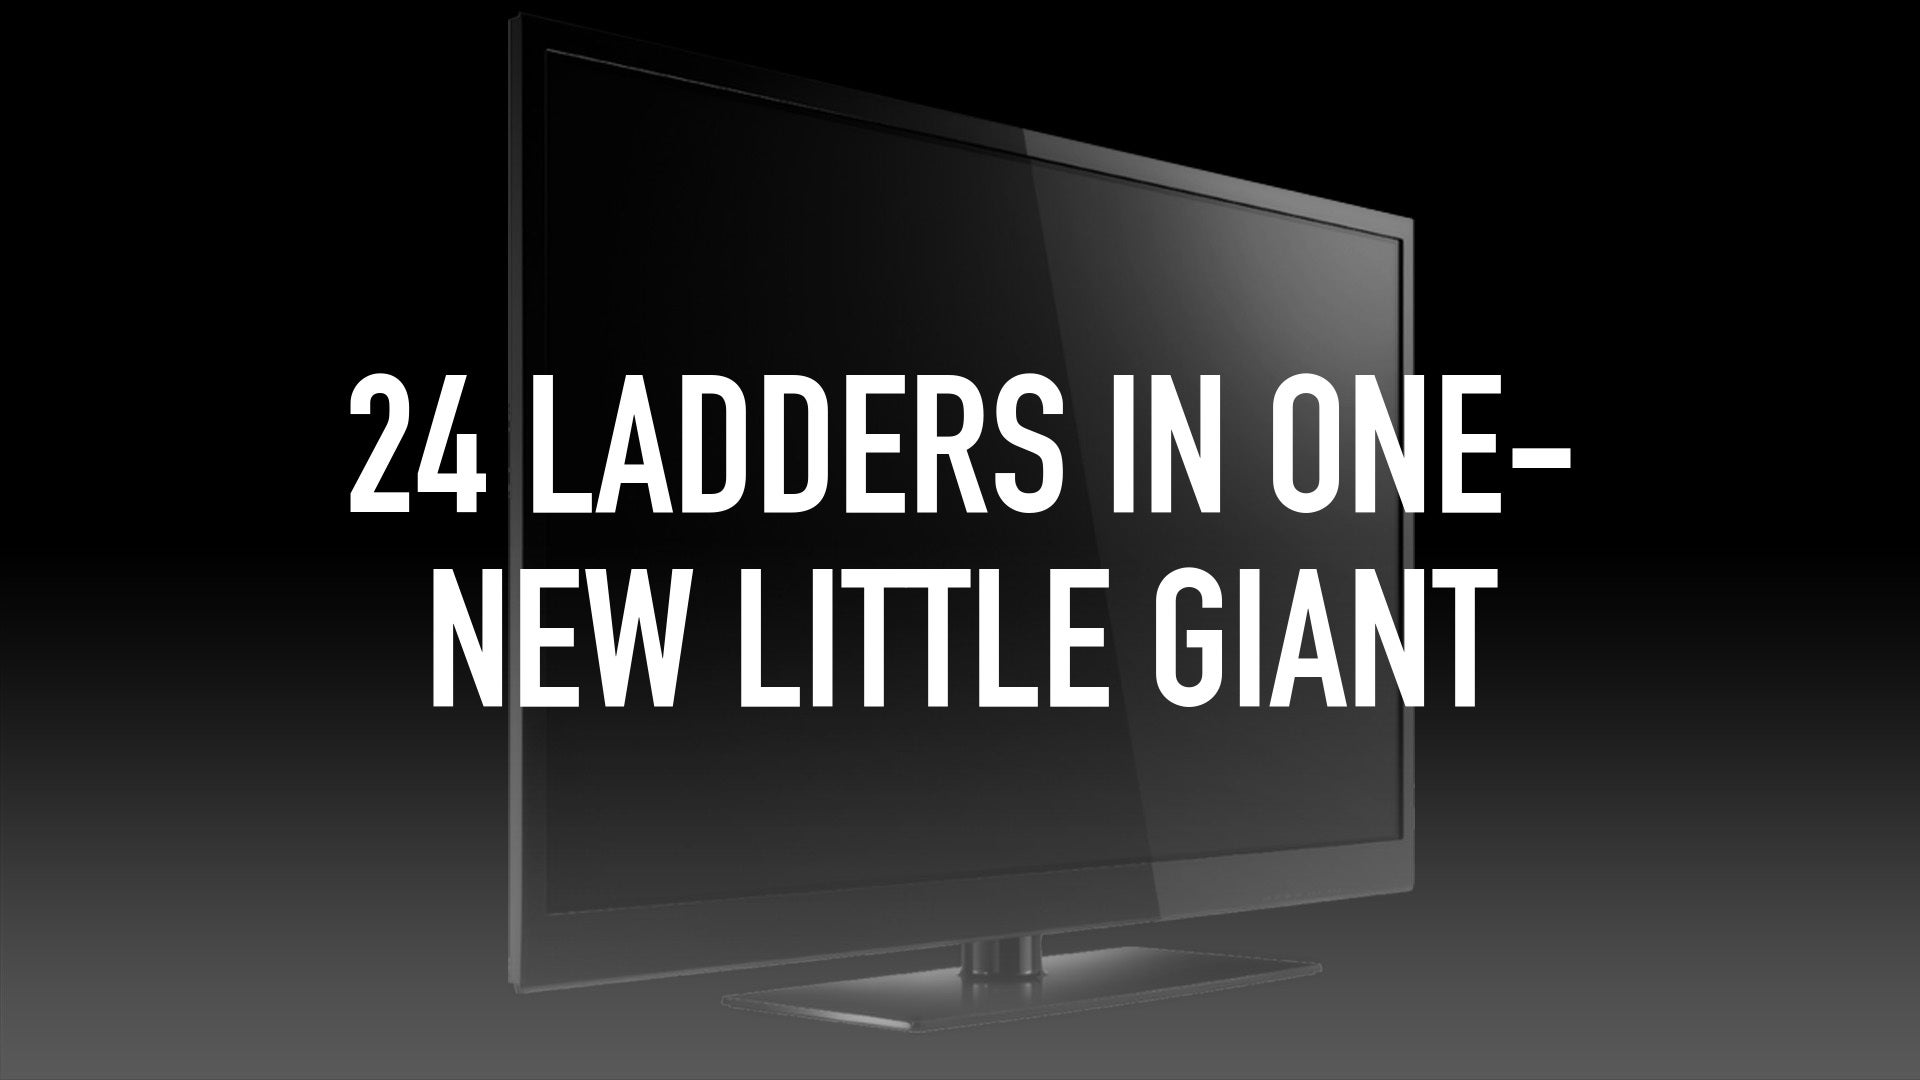 24 Ladders in One- New Little Giant